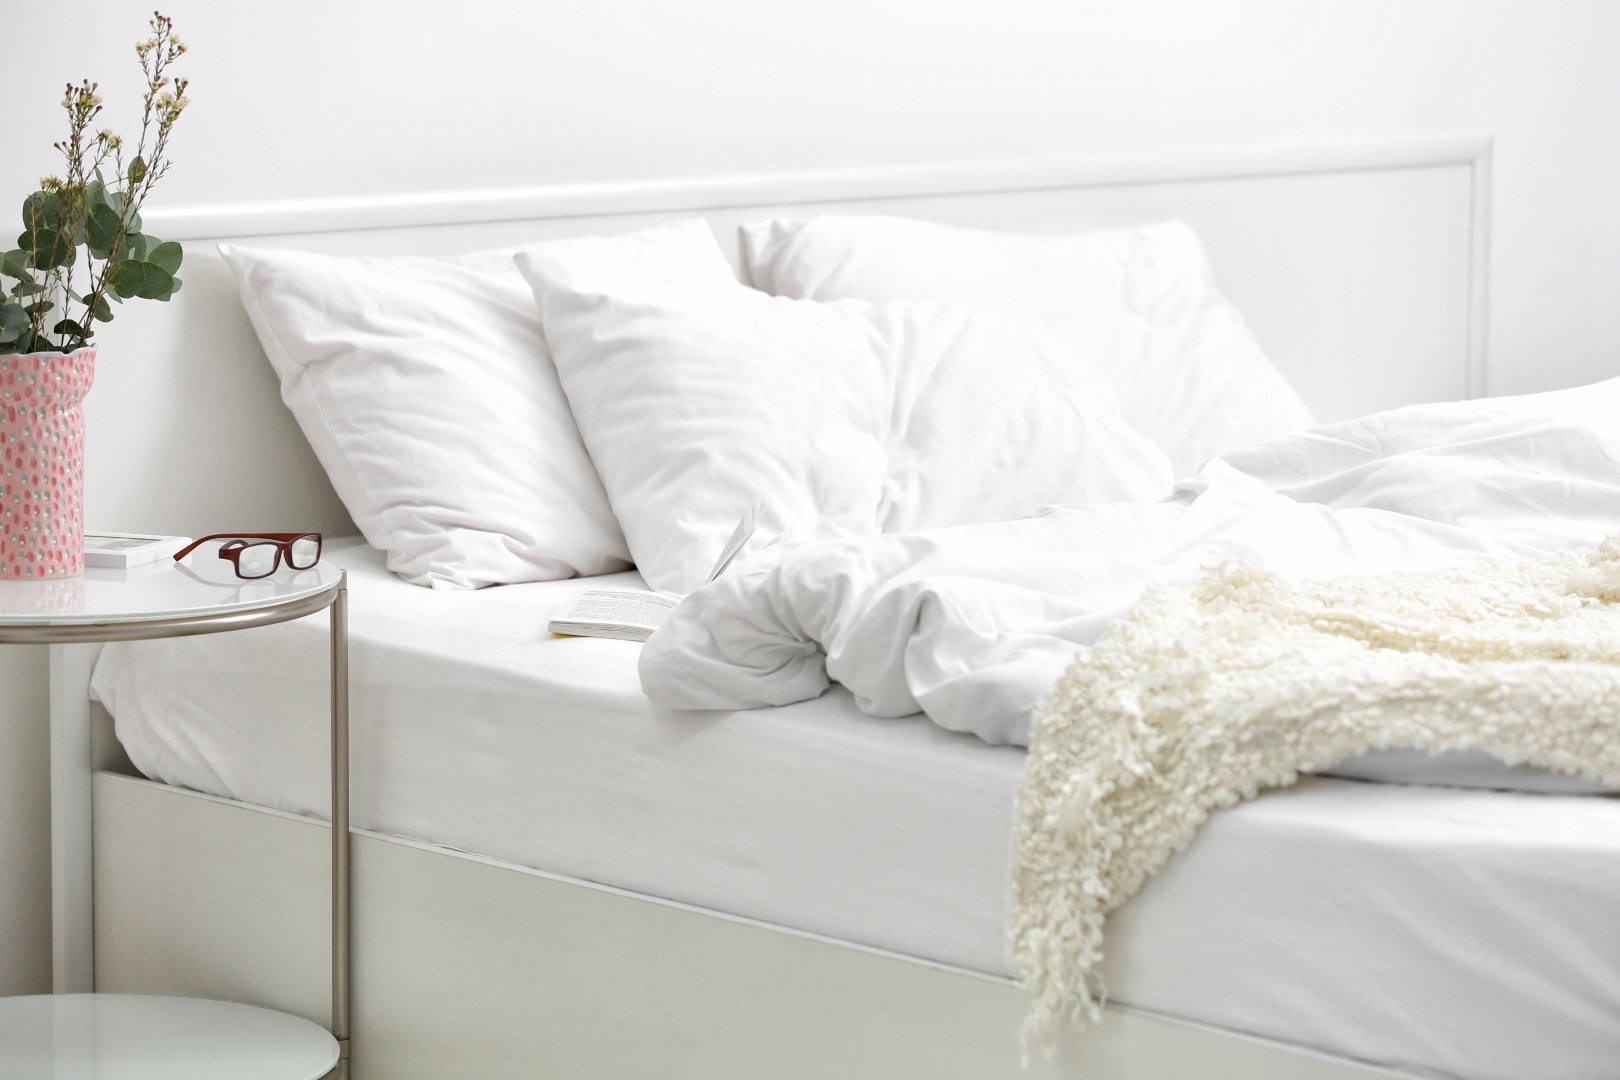 An image related to Best King-Size Mattresses